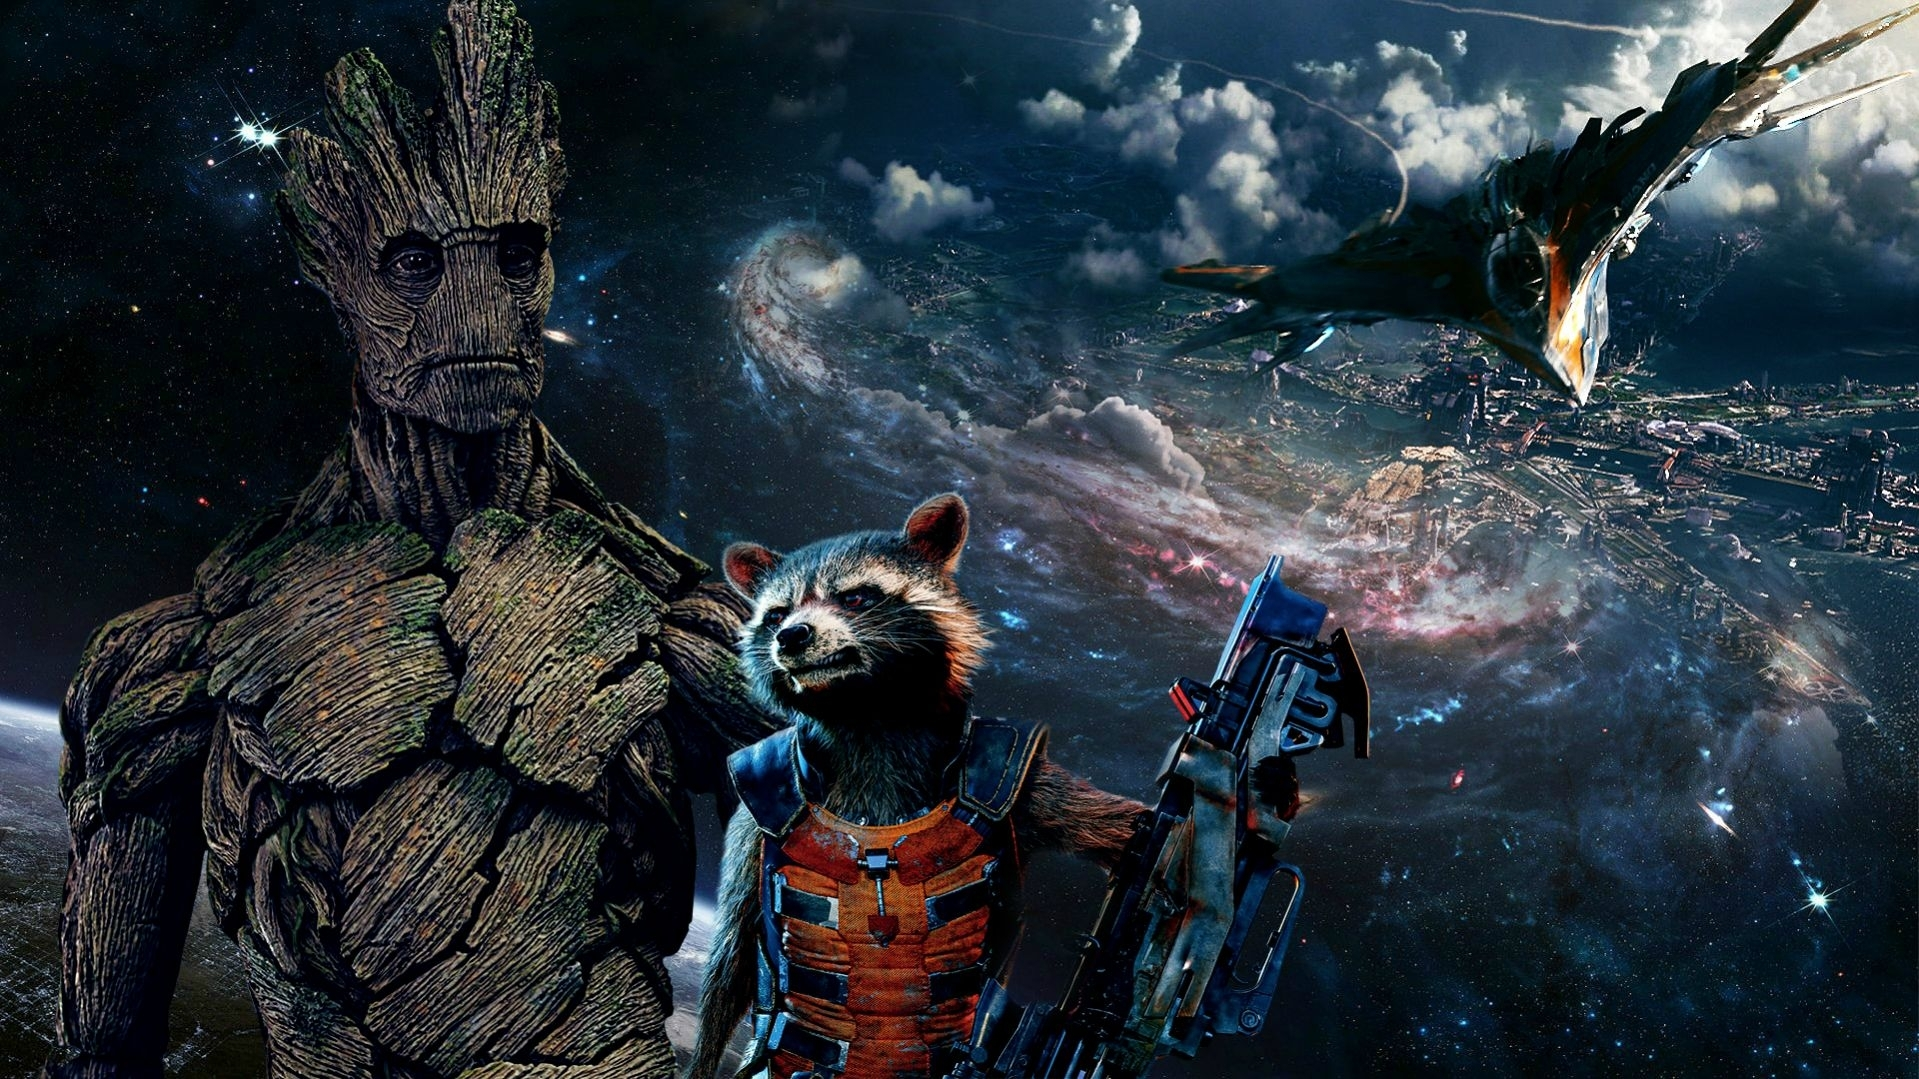 groot and rocket wallpaper [1920x1080] - imgur